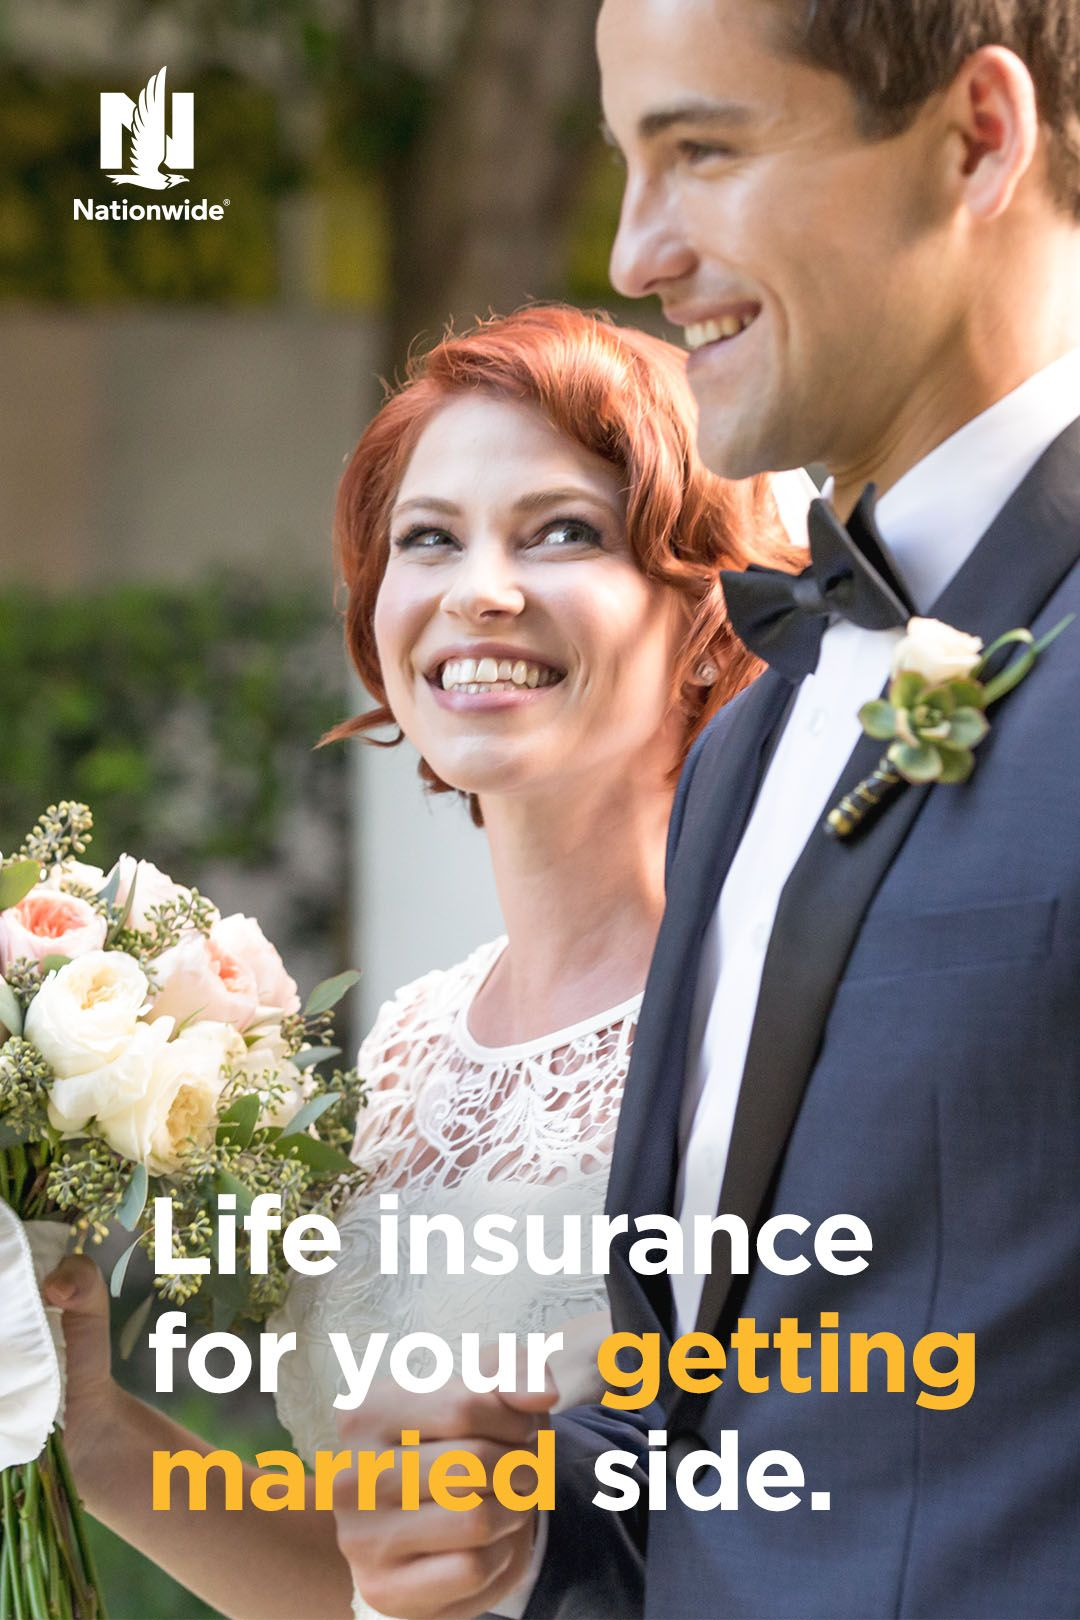 Couple Life Insurance Quotes: Finding A Life Insurance Plan That Fits Your Needs Shouldn